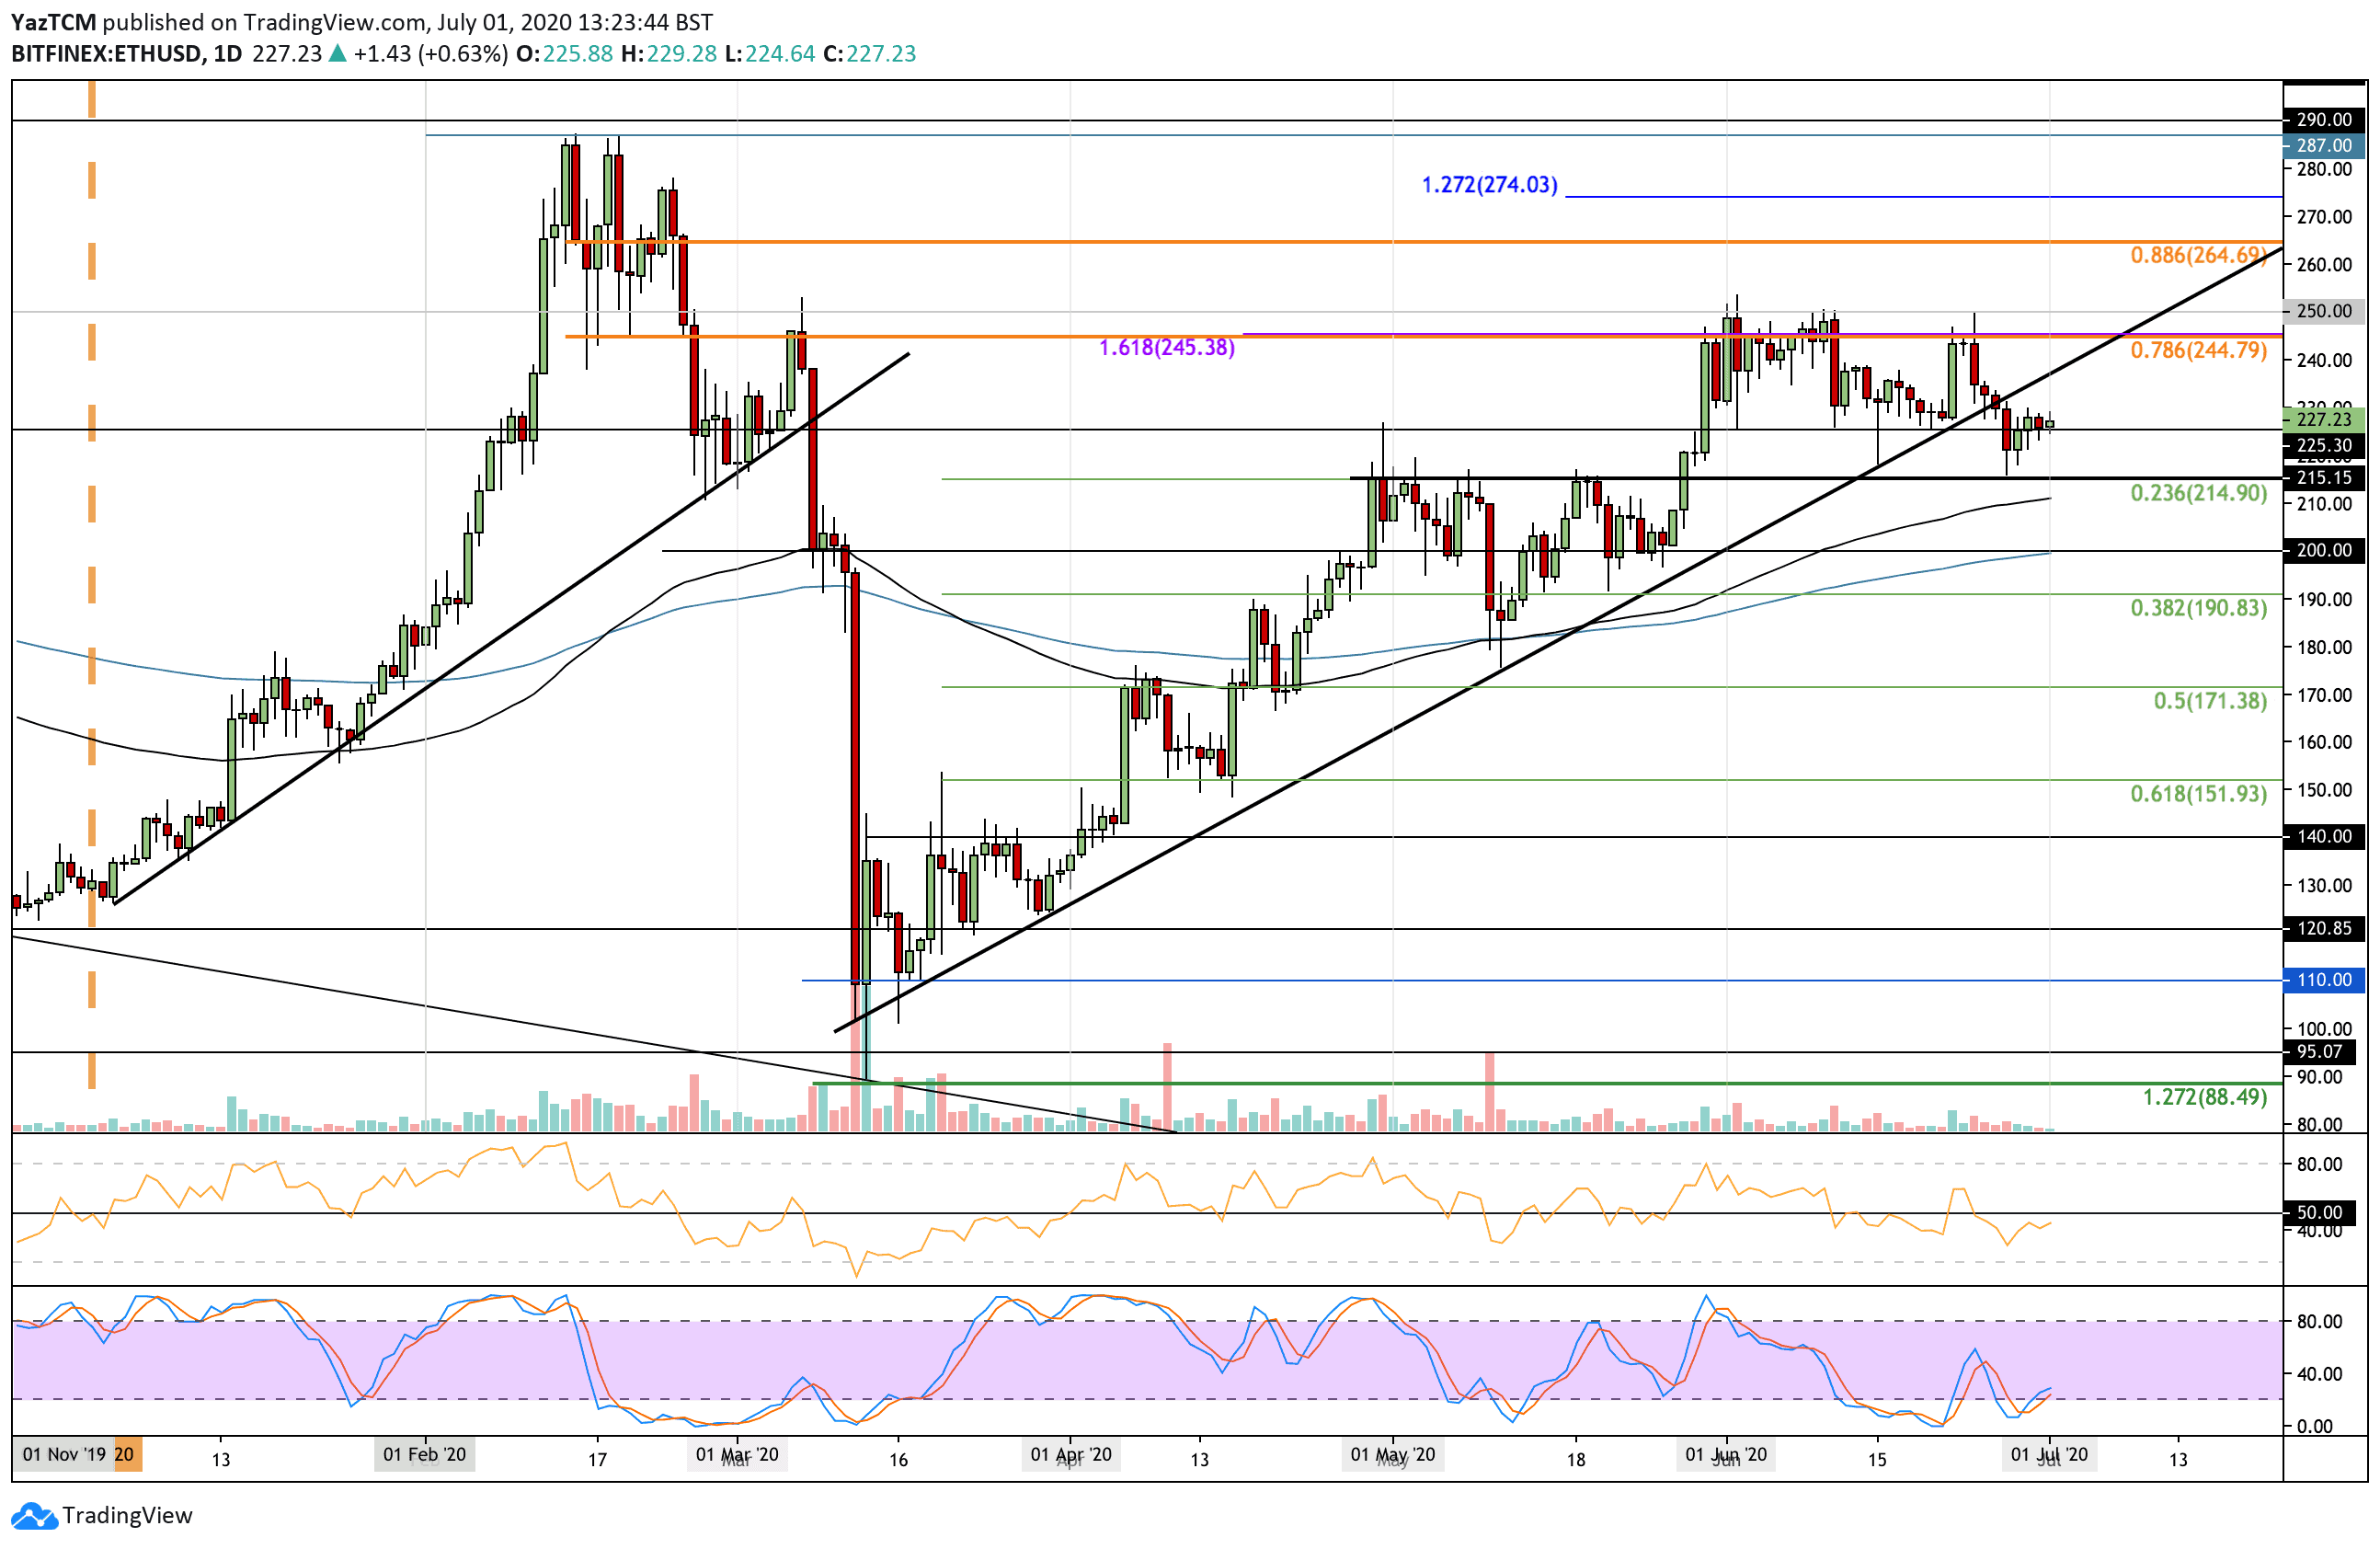 Ethereum Price Analysis: ETH Bulls Defending $225 And Looking For a Rebound